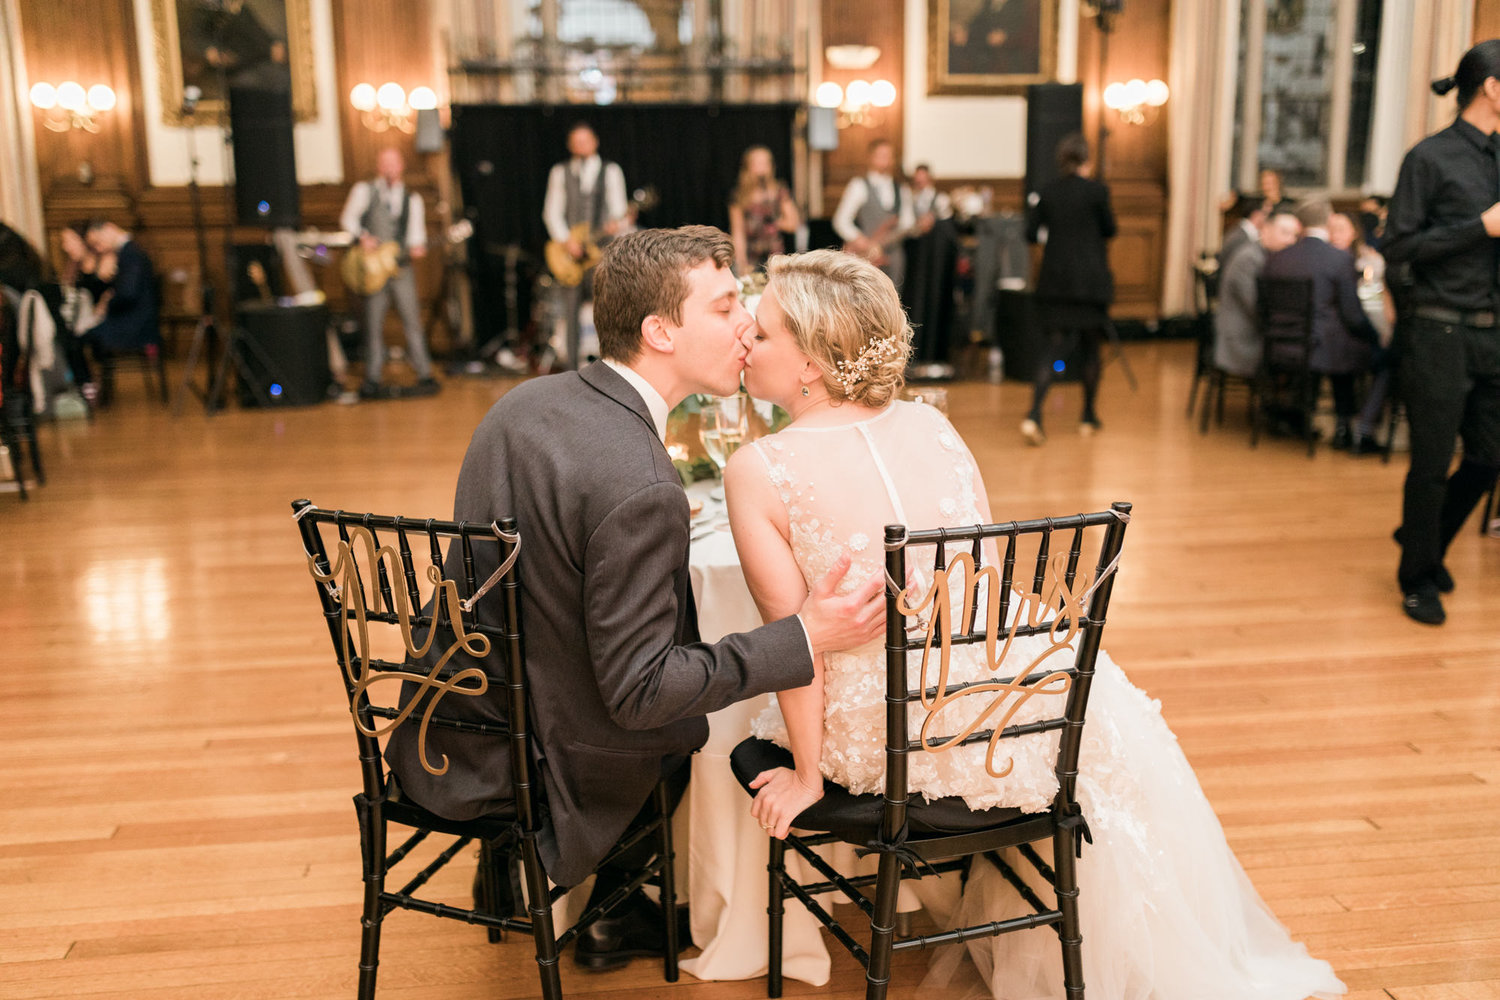 haley-richter-photography-autumn-college-of-physicians-wedding-philadelphia--336